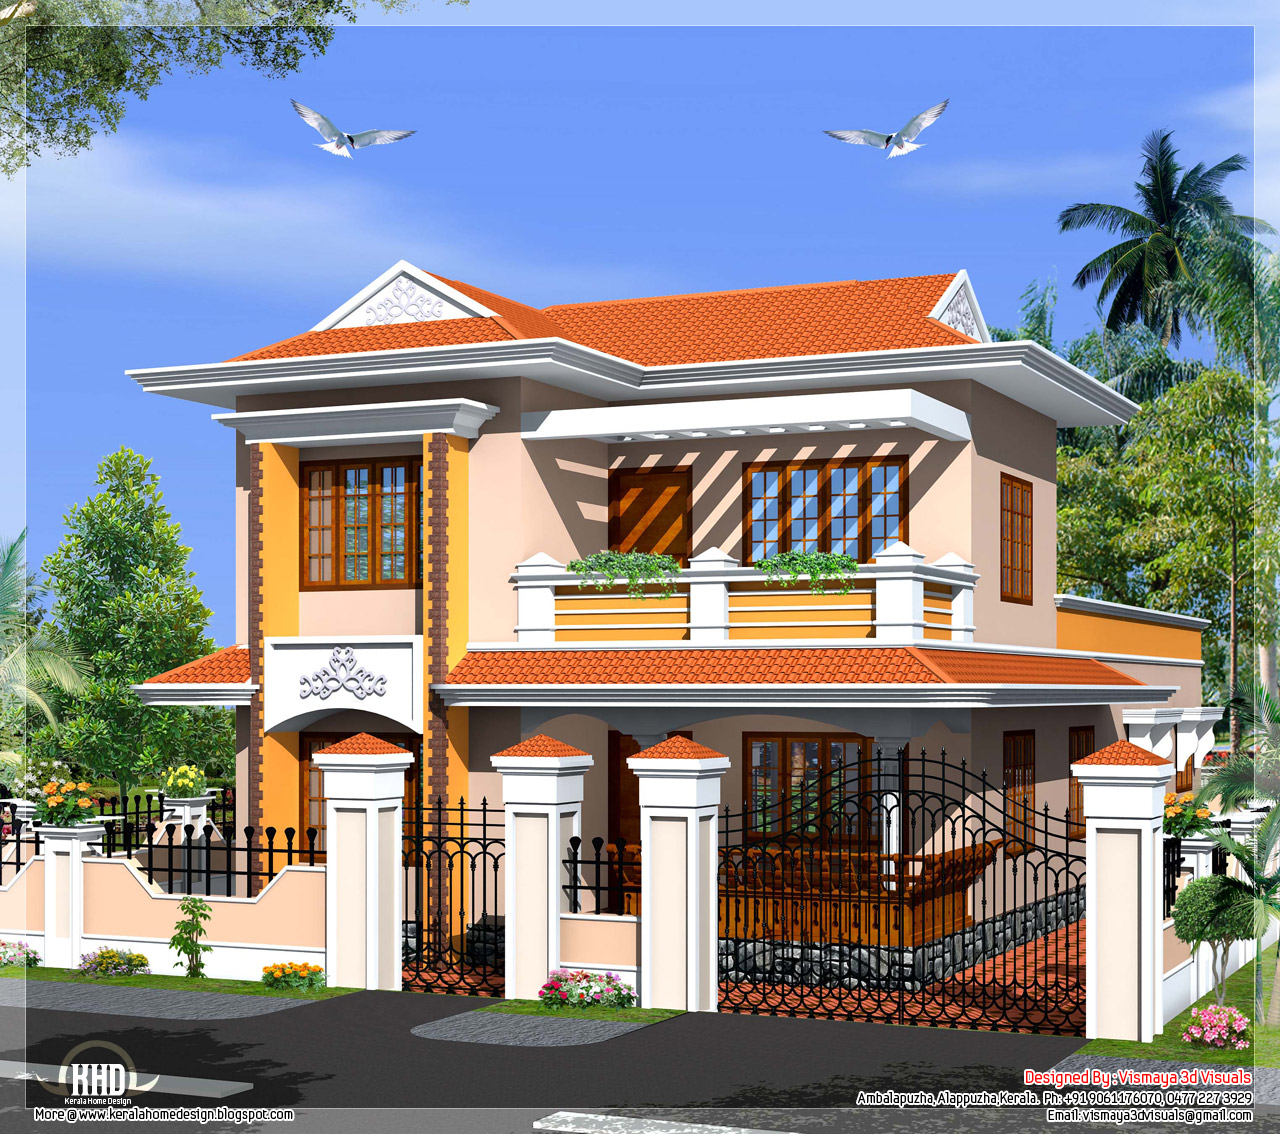 Kerala model villa in 2110 in square feet house design plans for Villa house plans